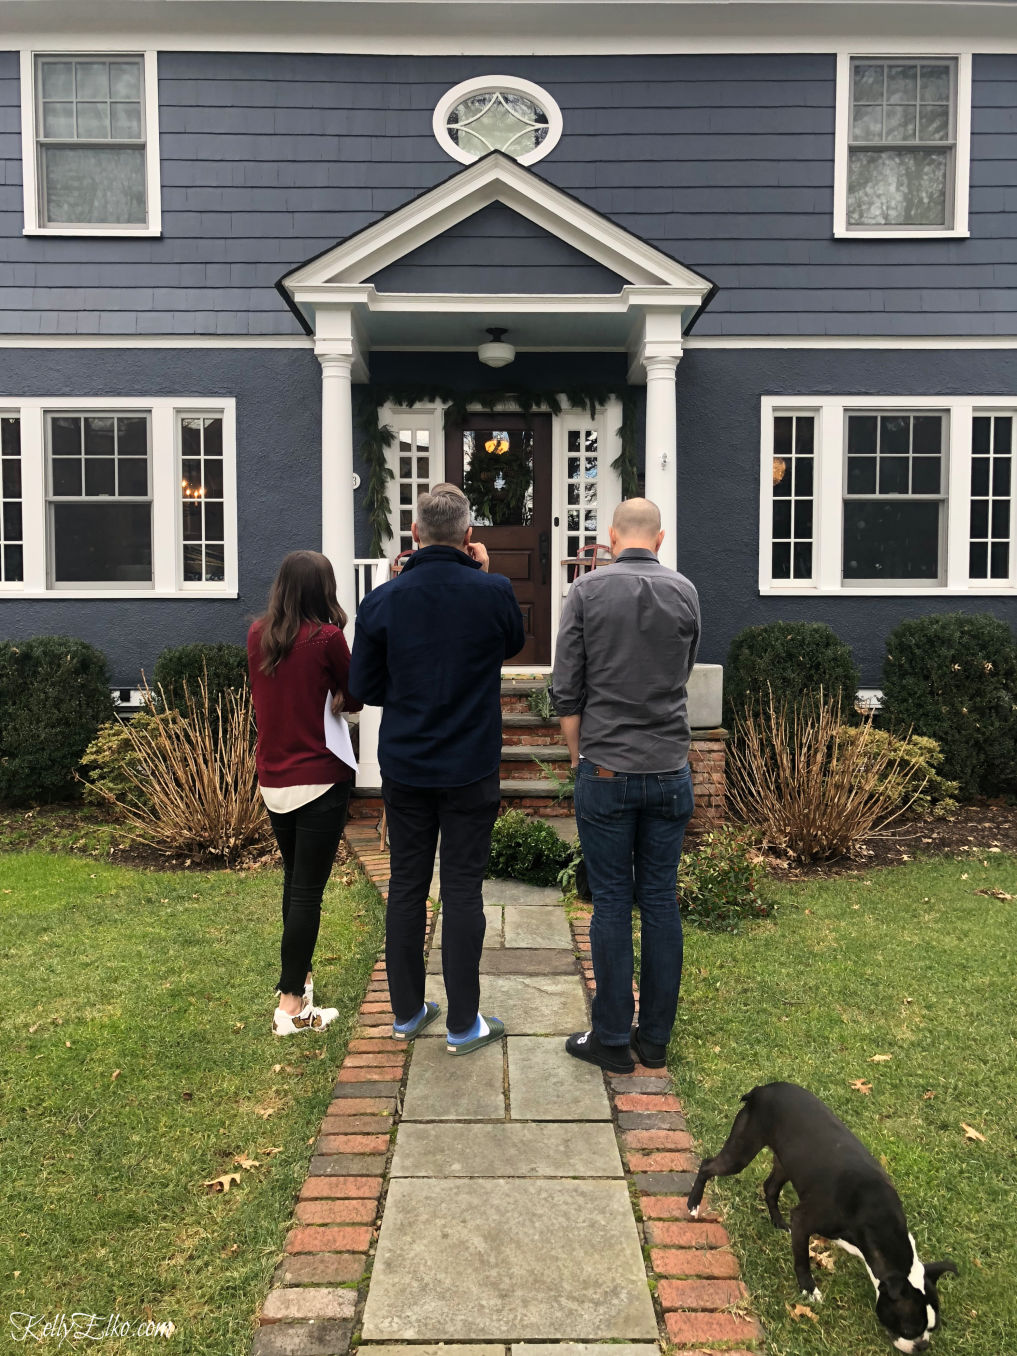 Behind the scenes Better Homes and Gardens photo shoot! kellyelko.com #photoshoot #interiordecor #photography #bhg